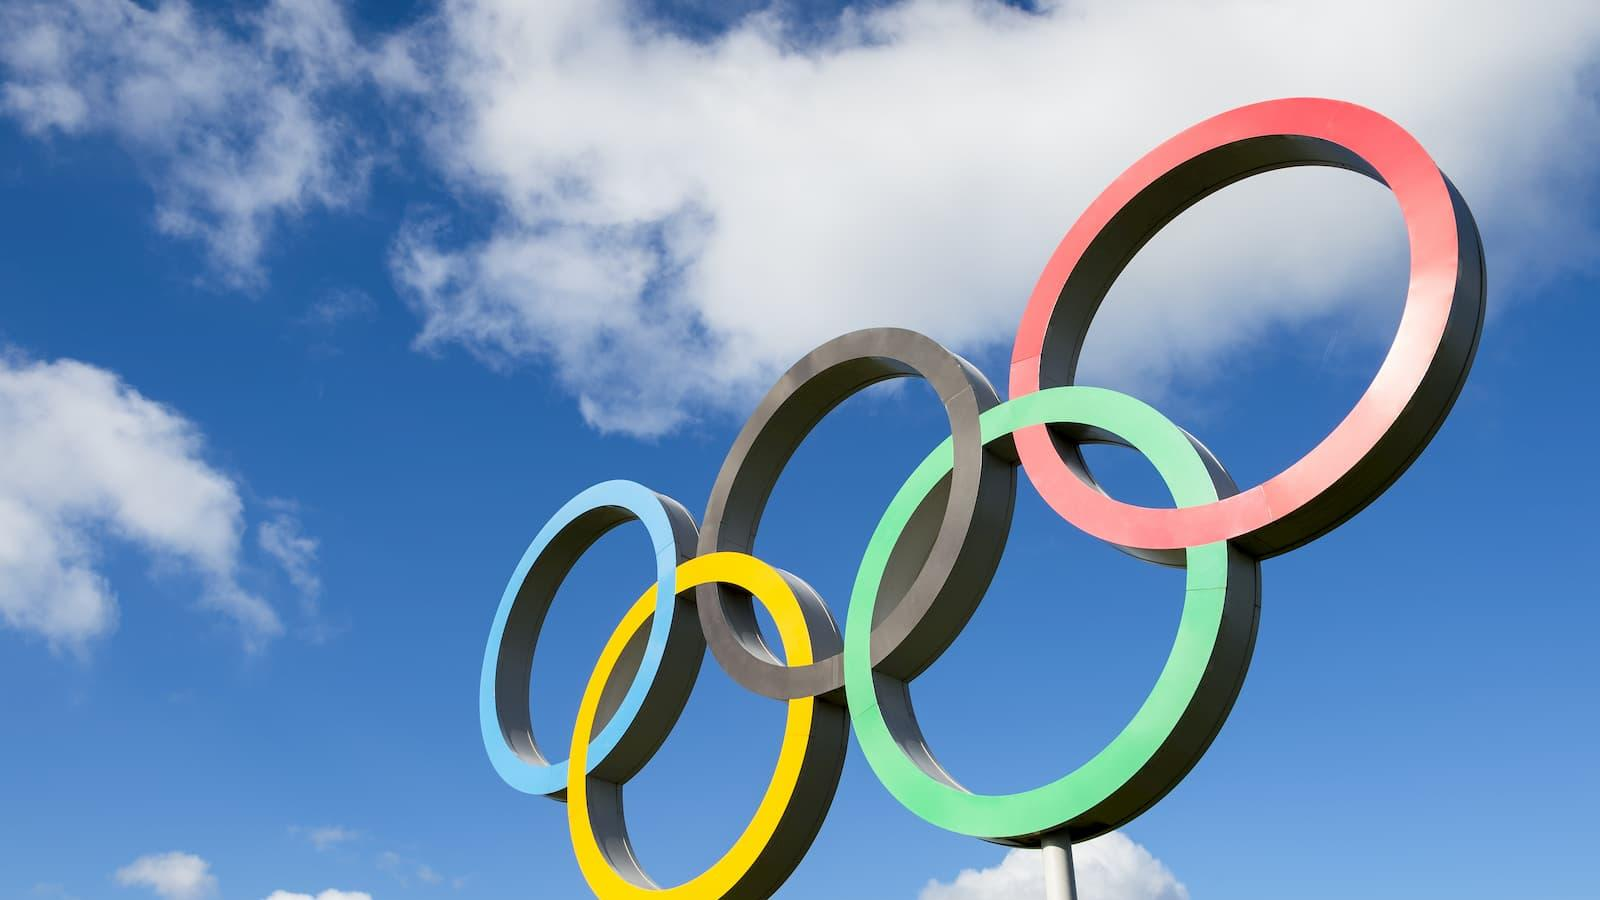 Qatar announces interest to host future Olympic and Paralympic Games